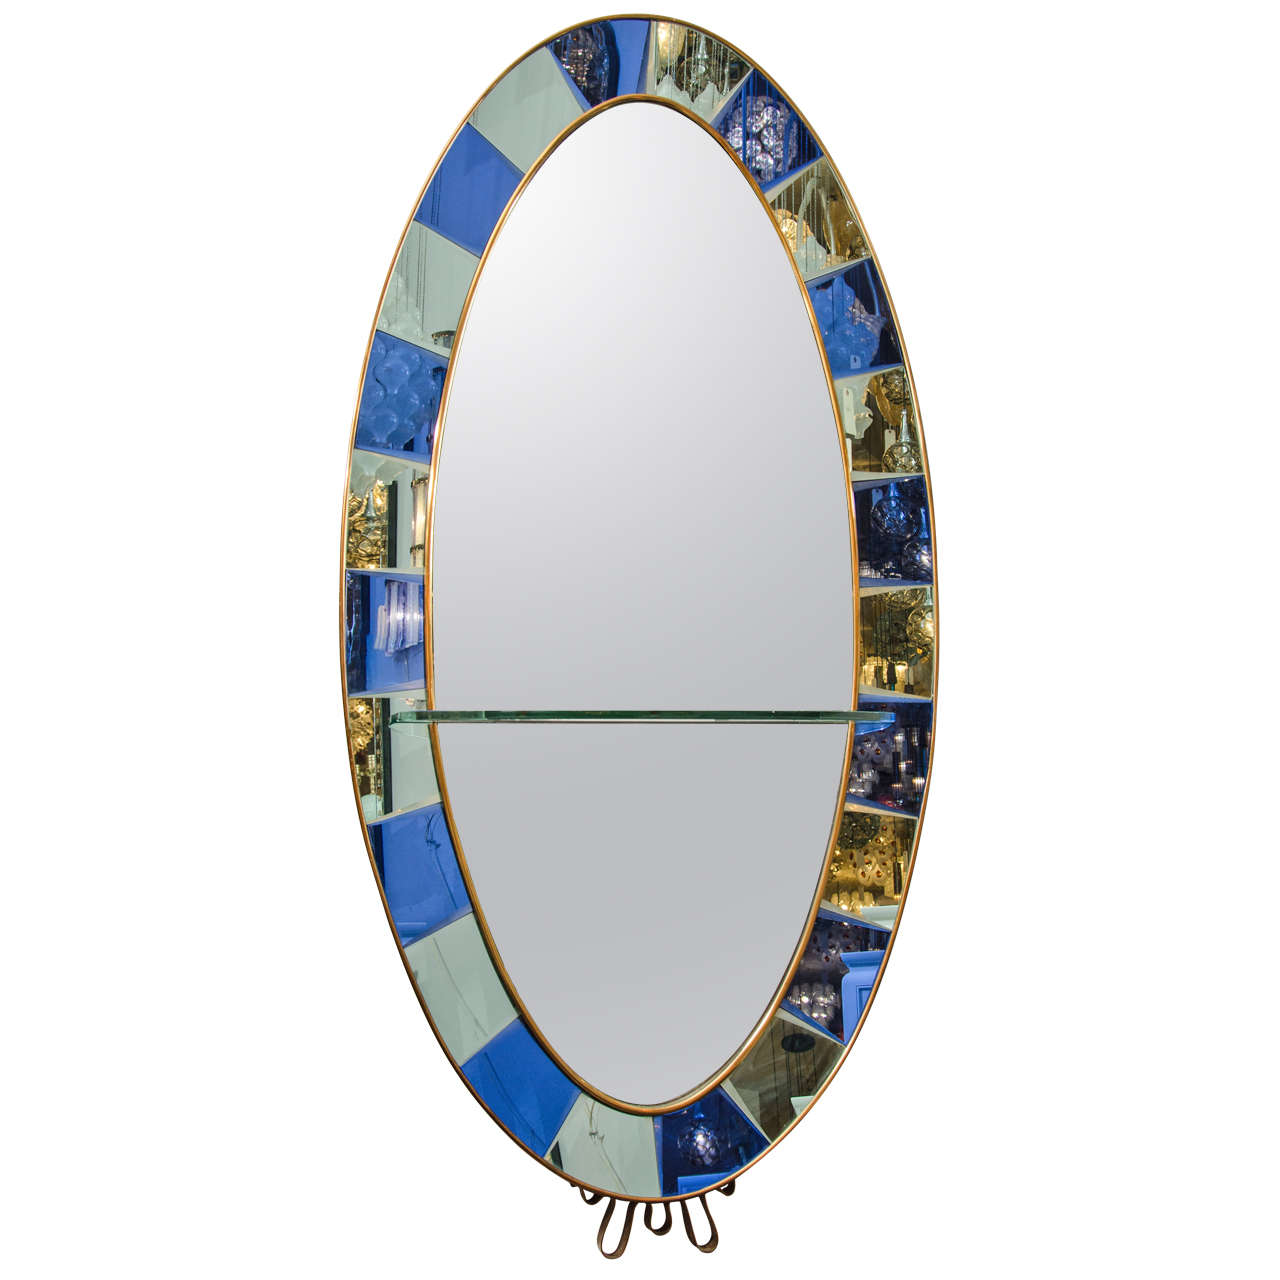 crystal arte oval standing mirror with beveled cobalt